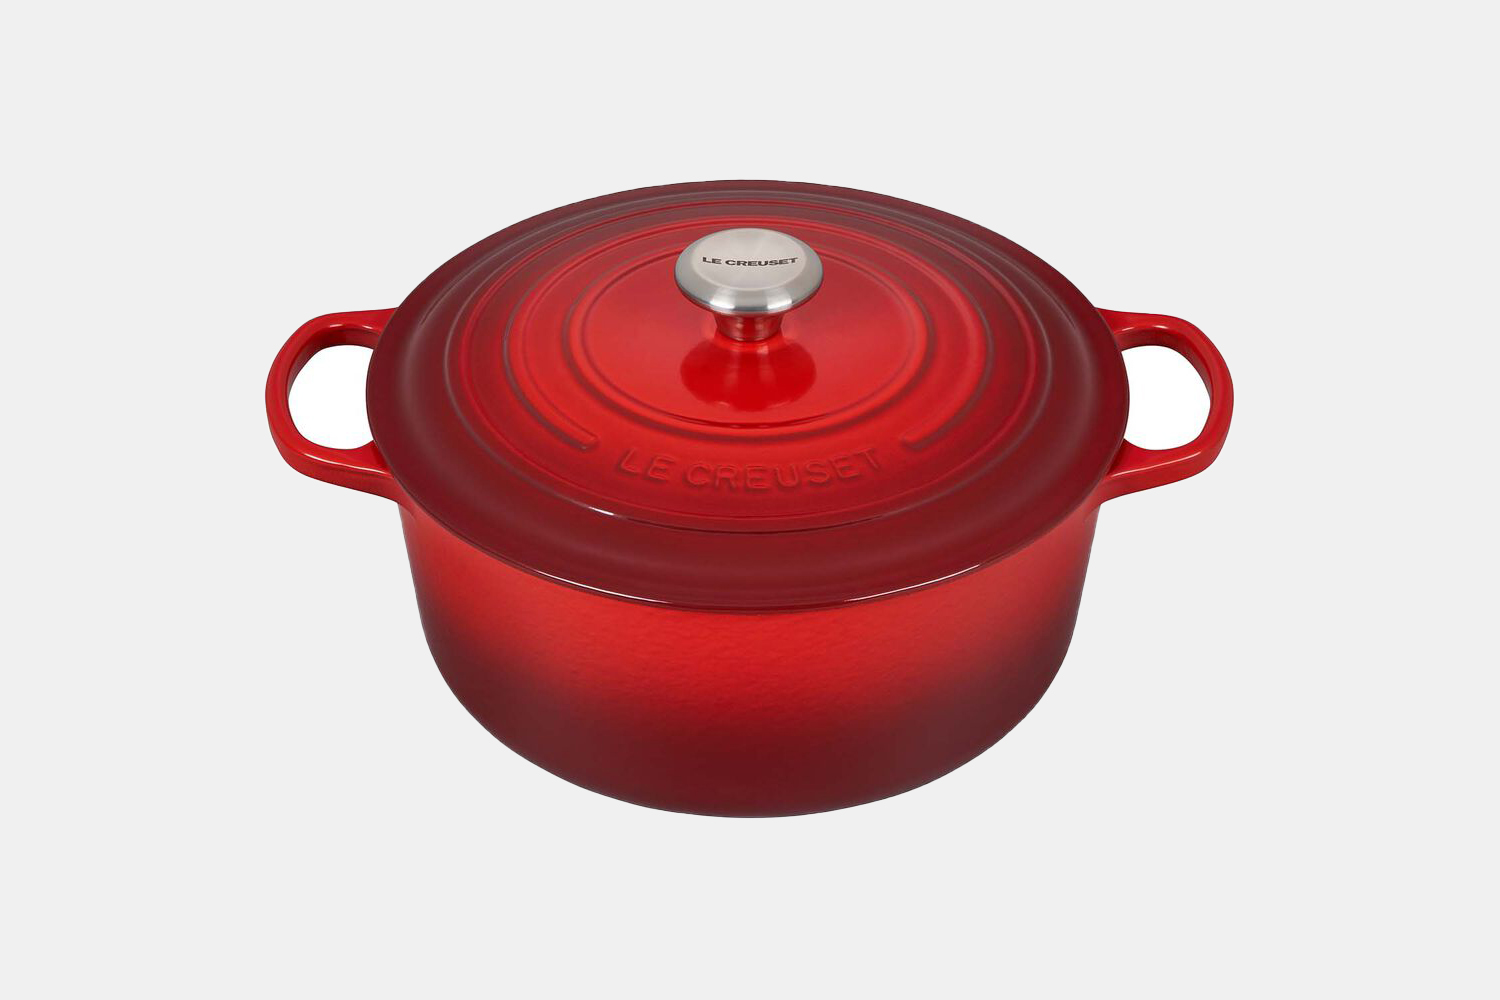 A red dutch oven